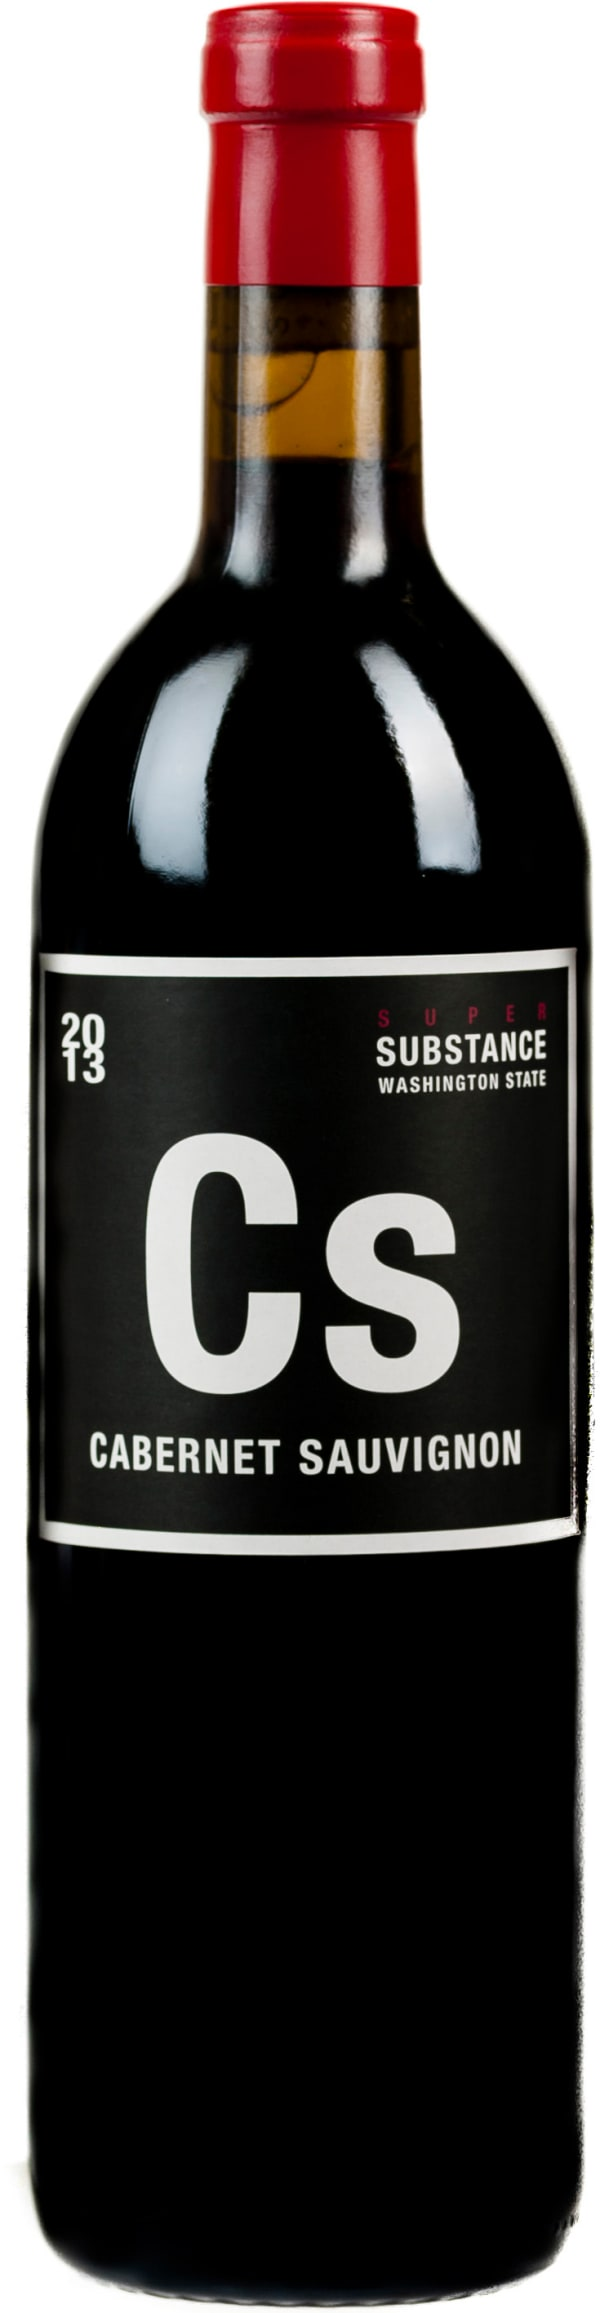 Wines of Substance Super Substance Stoneridge Vineyard Cabernet Sauvignon 2013